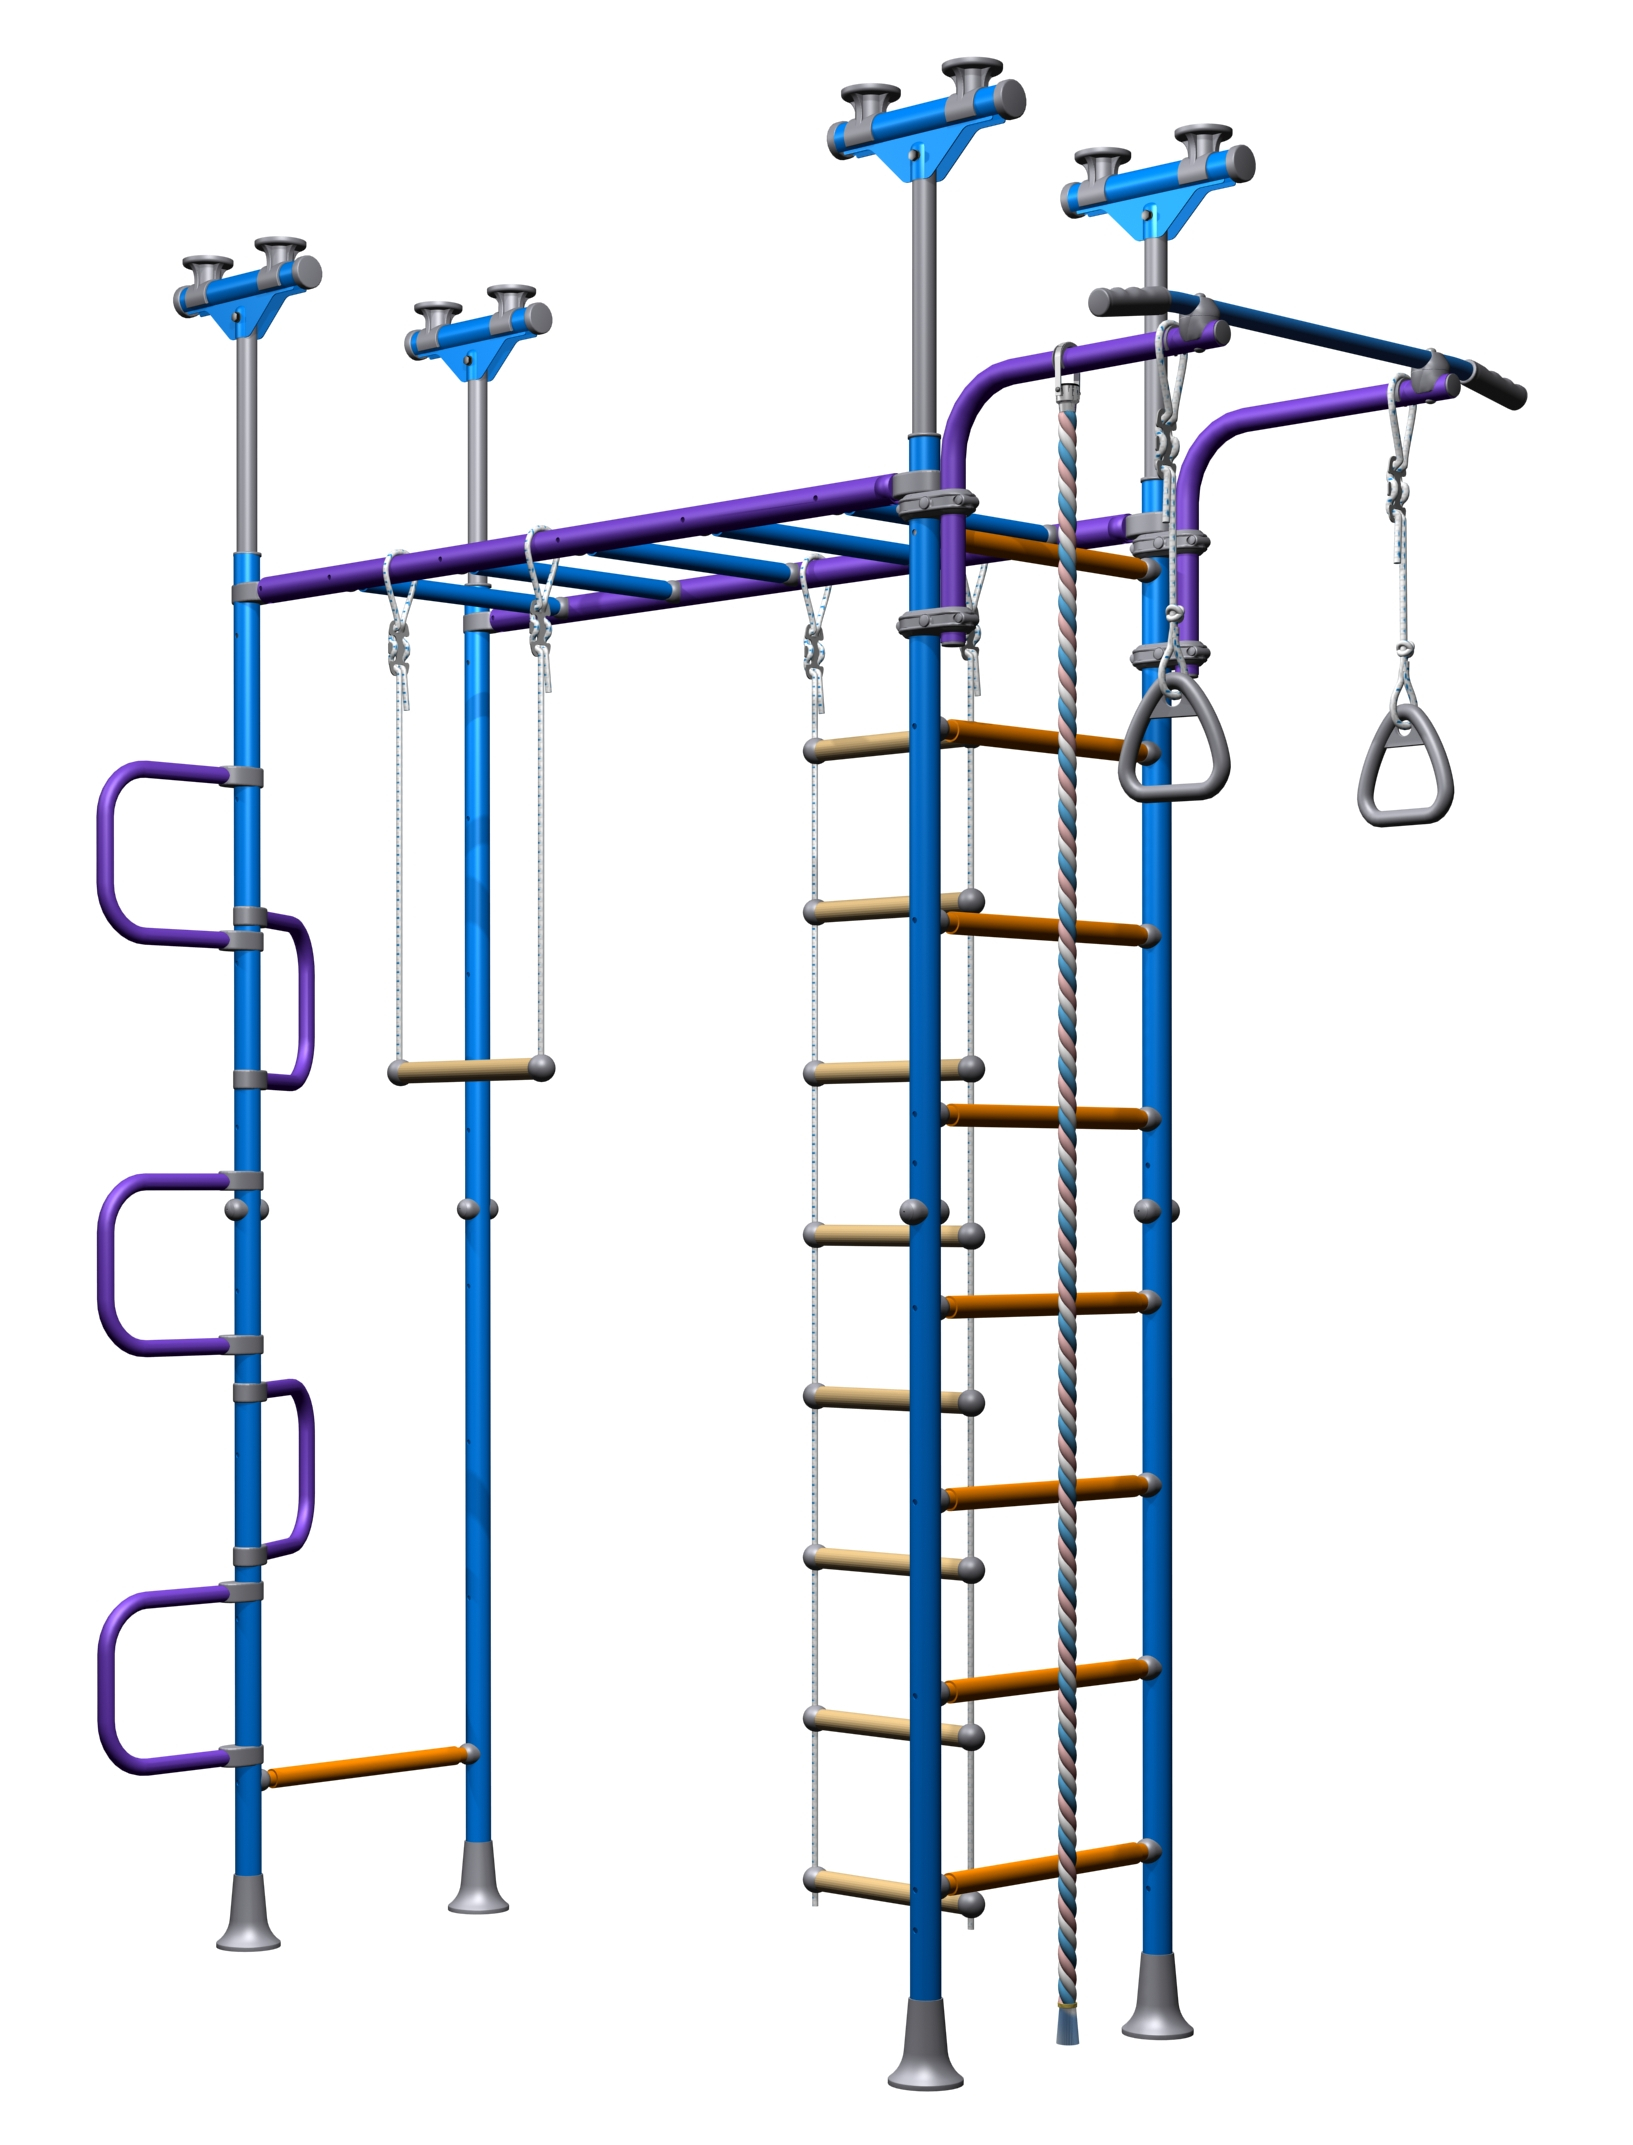 Indoor Sport Gym for Kids, model JungleDome - Jungle Gym with metal rungs.